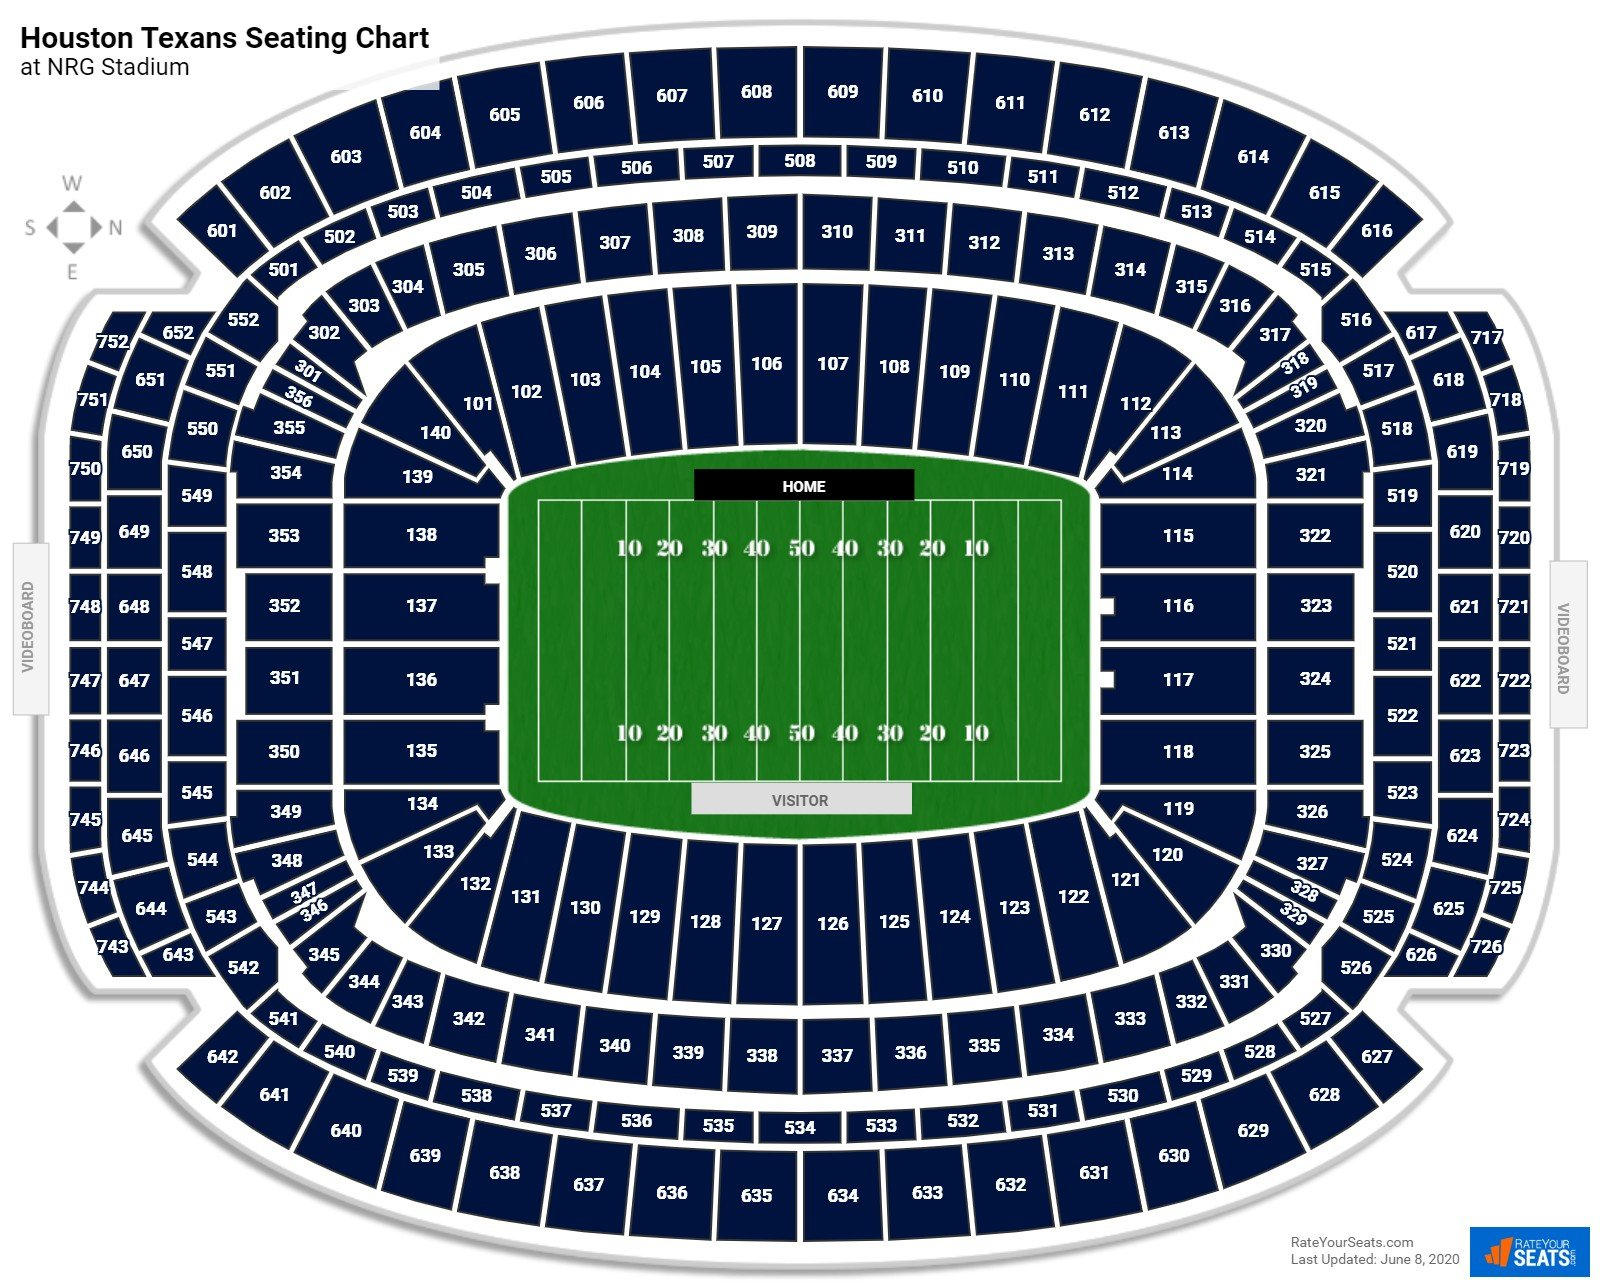 Houston Texans Seating Chart